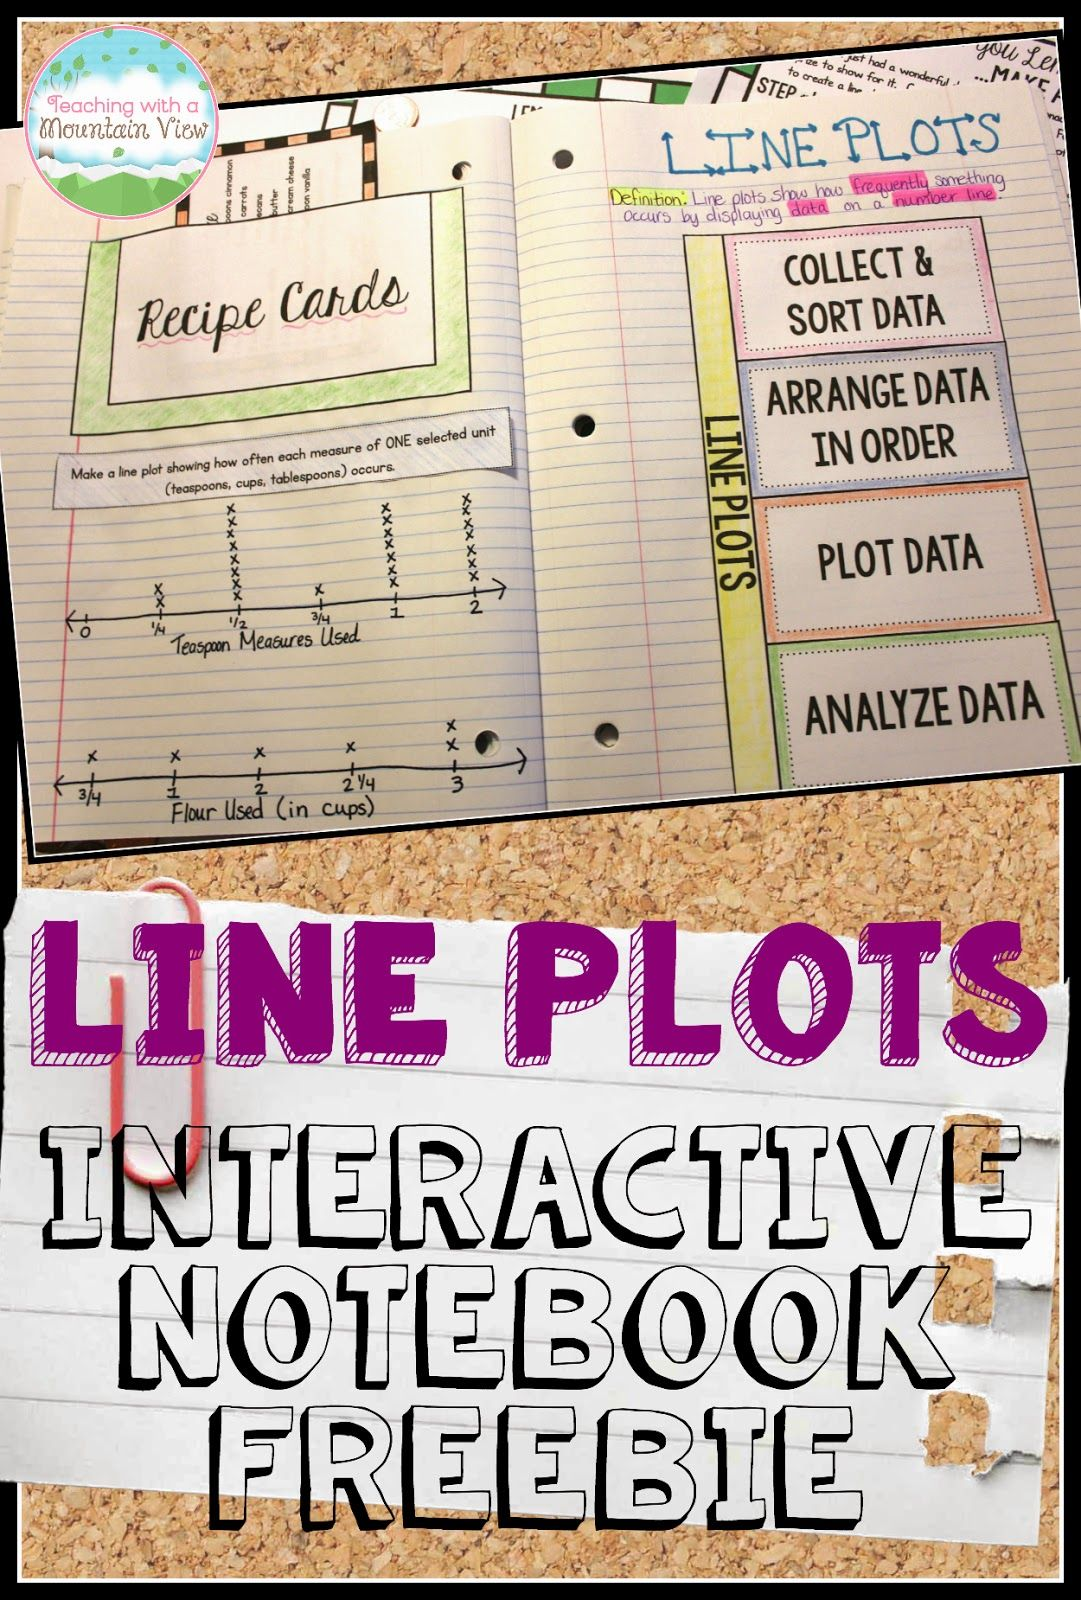 hight resolution of Line Plot Activities and Resources - Teaching with a Mountain View   Math  interactive